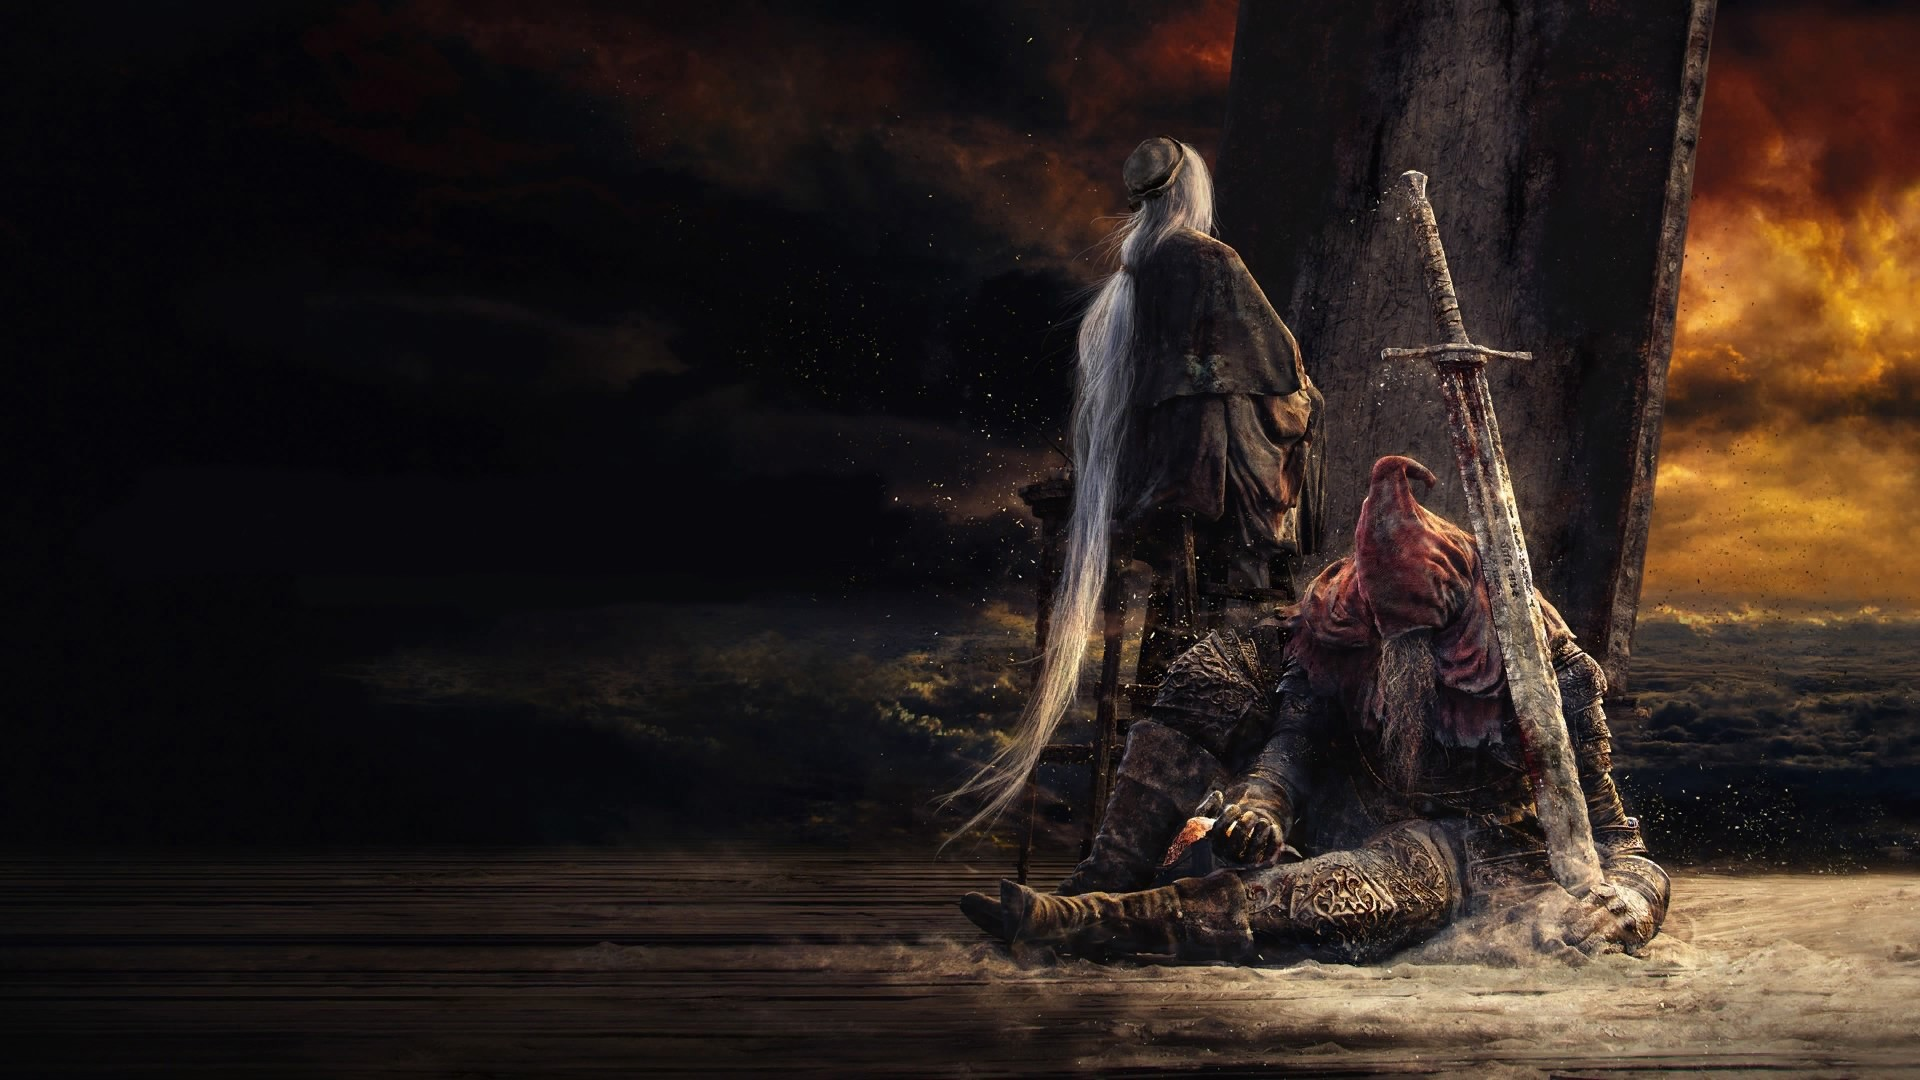 1920x1080 Dark Souls 3, Ashes Of Ariandel, Slave Knight Gael, Artwork